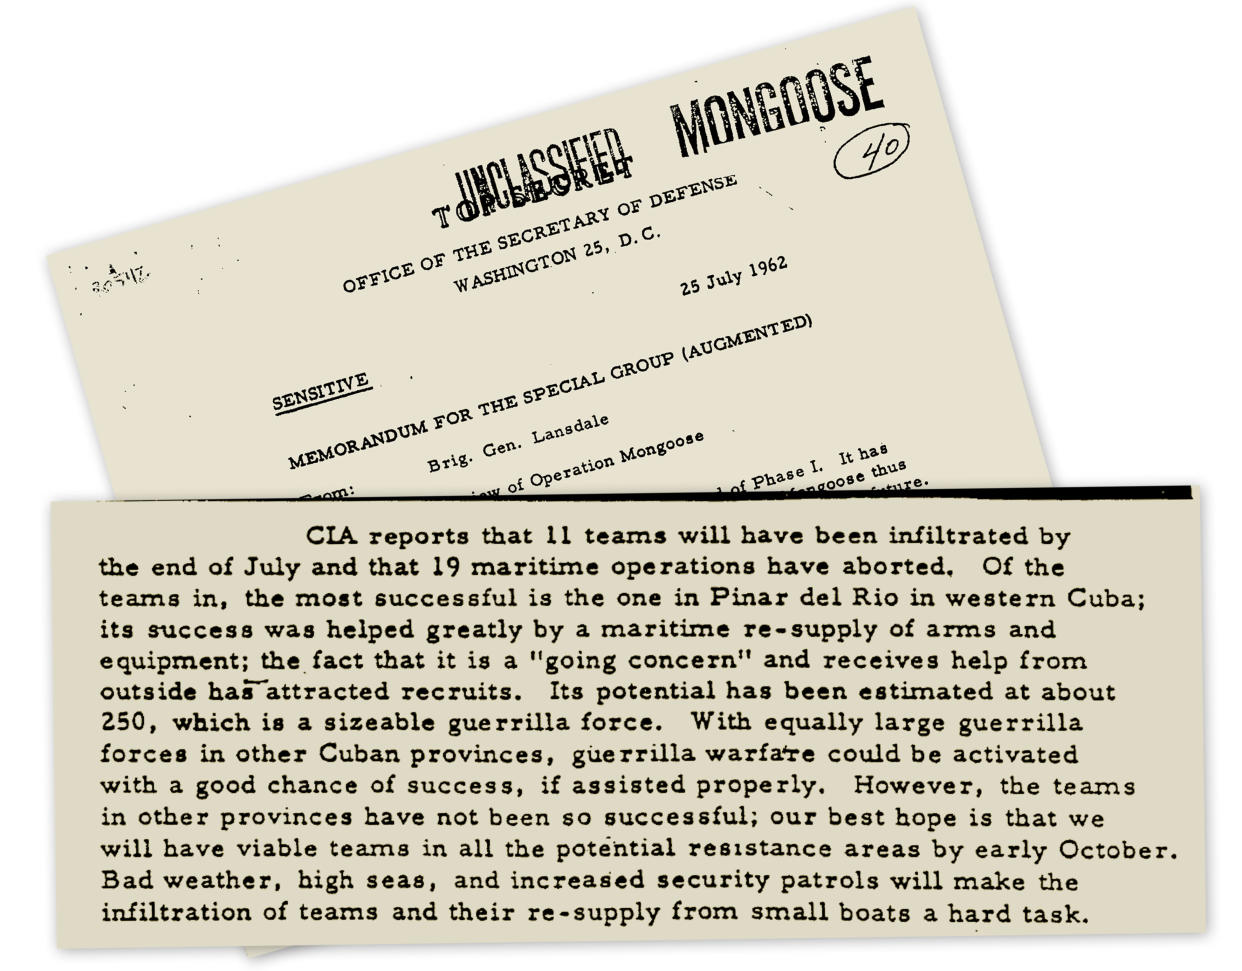 Excerpts from Brig. Gen. Edward Lansdale's Operation Mongoose memo. (Photo: No credit)